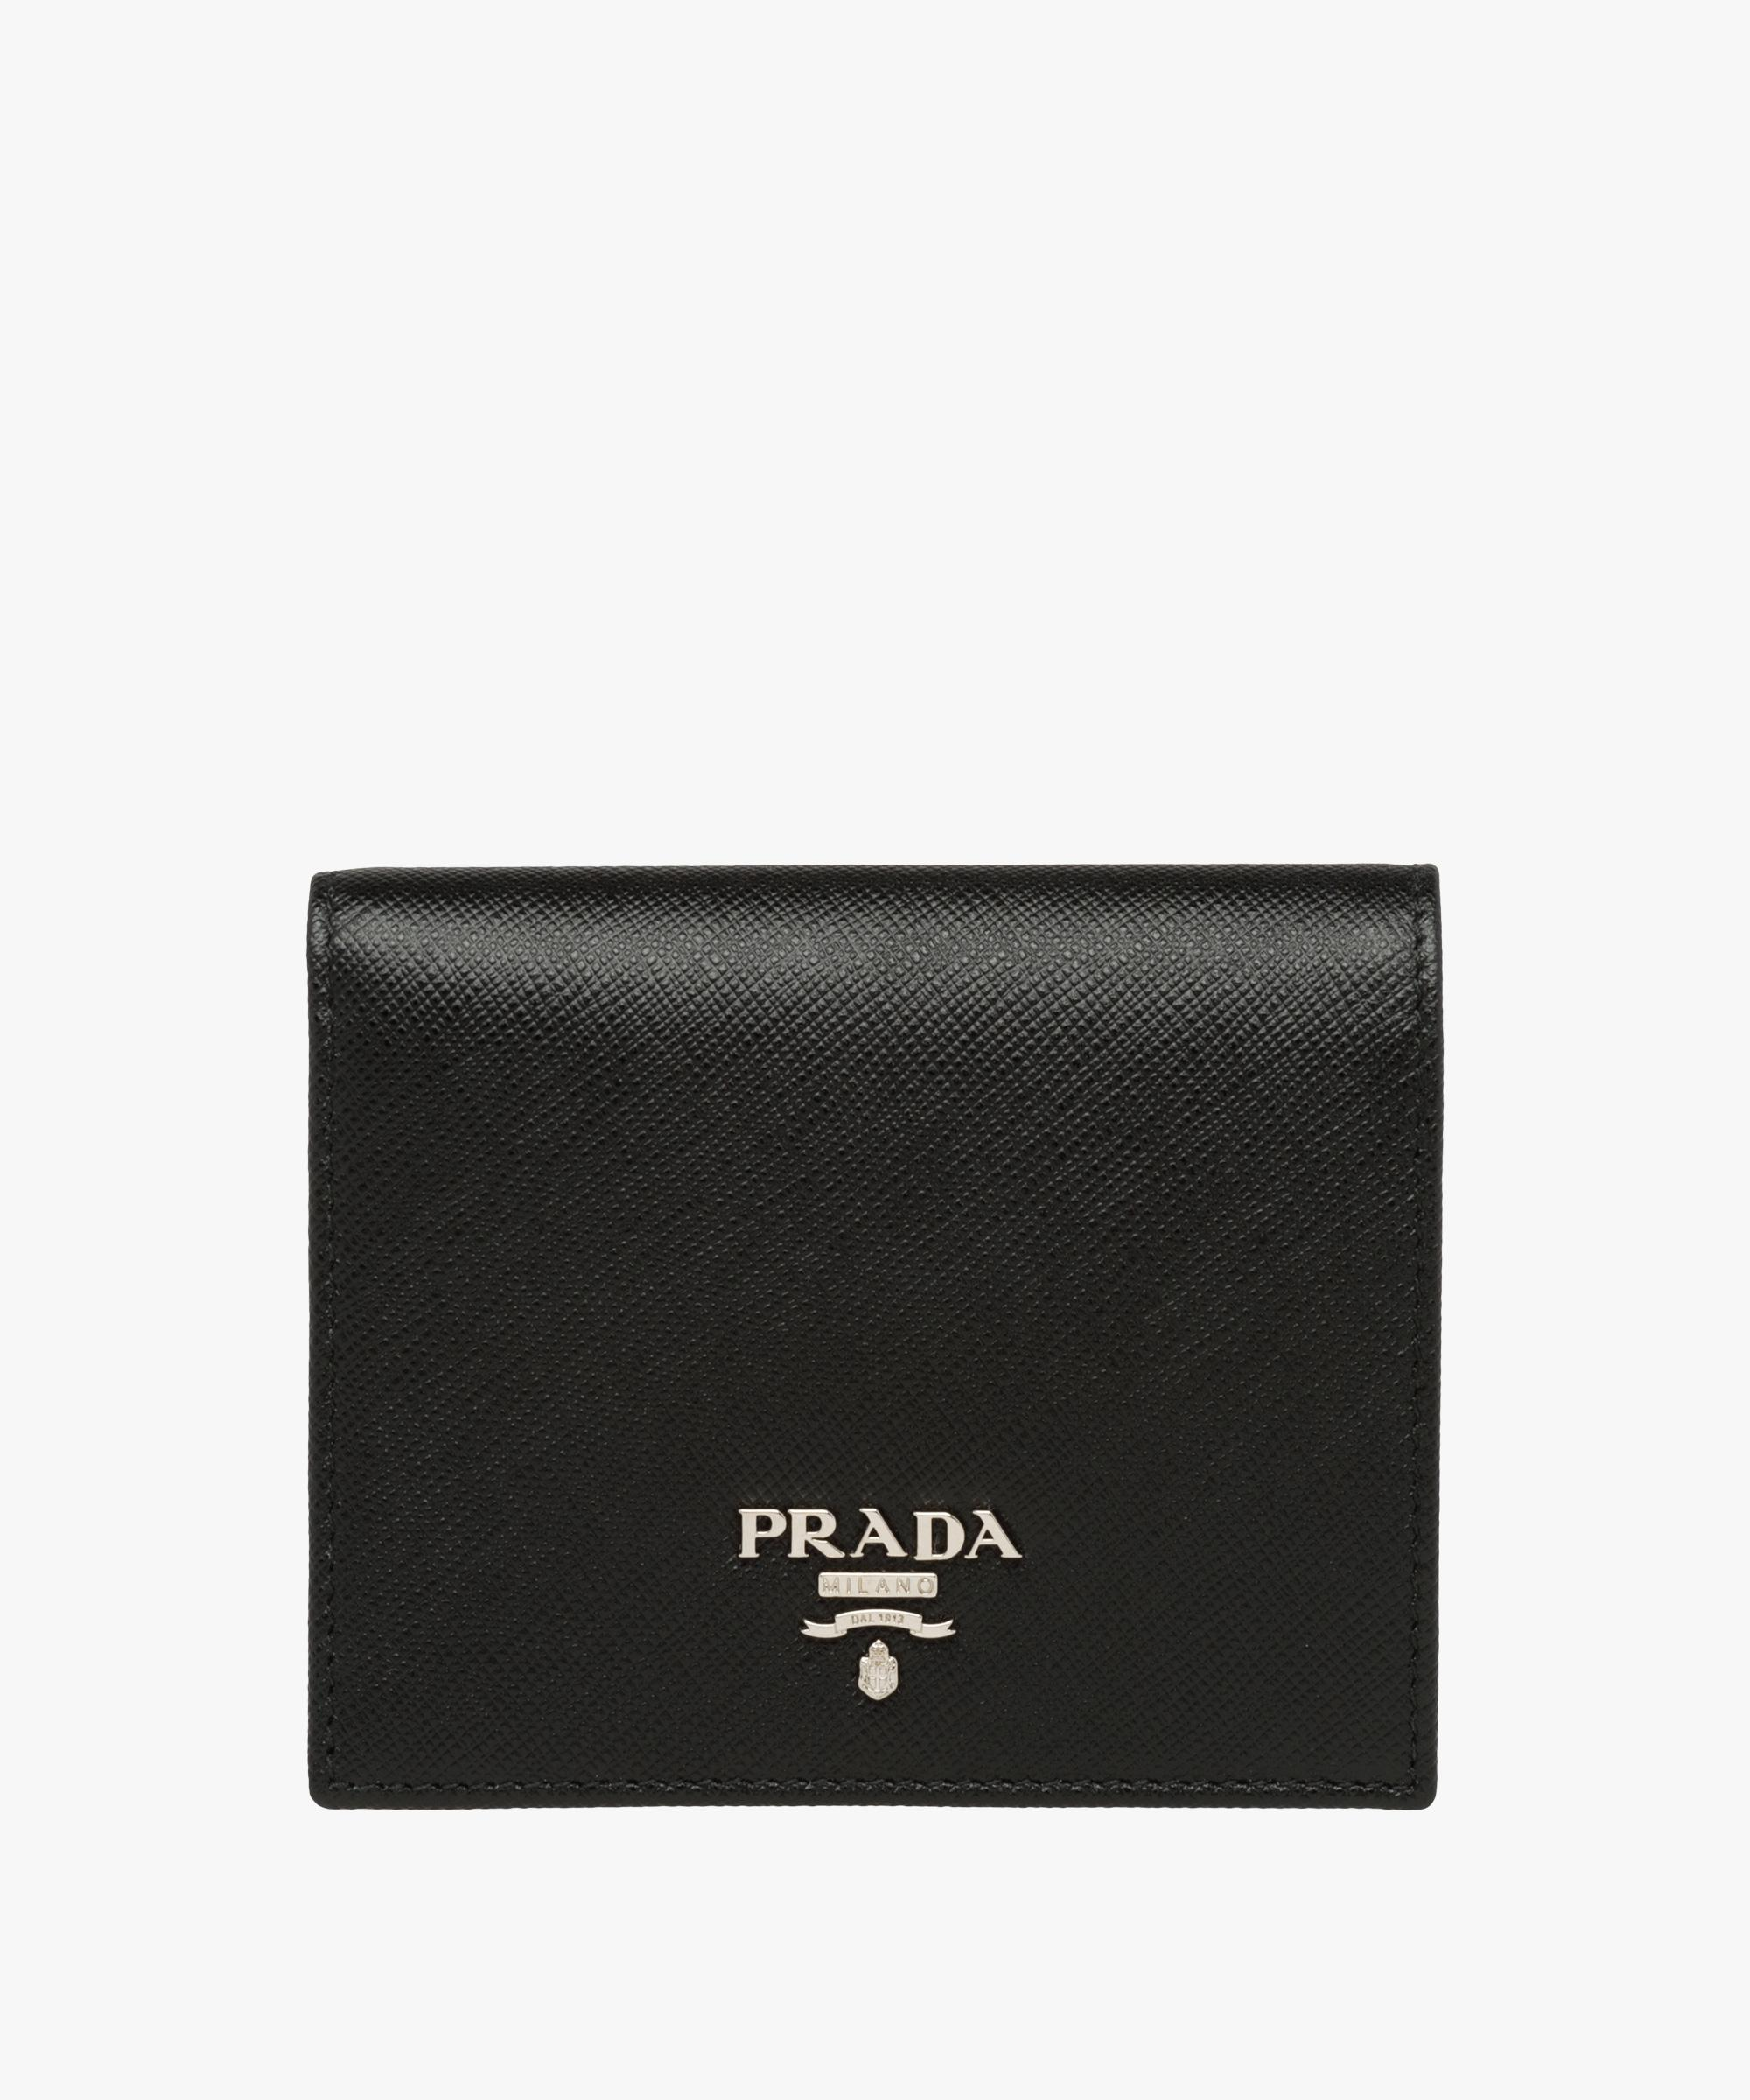 c041cde0a08895 Prada Small Saffiano Leather Wallet in Black - Lyst